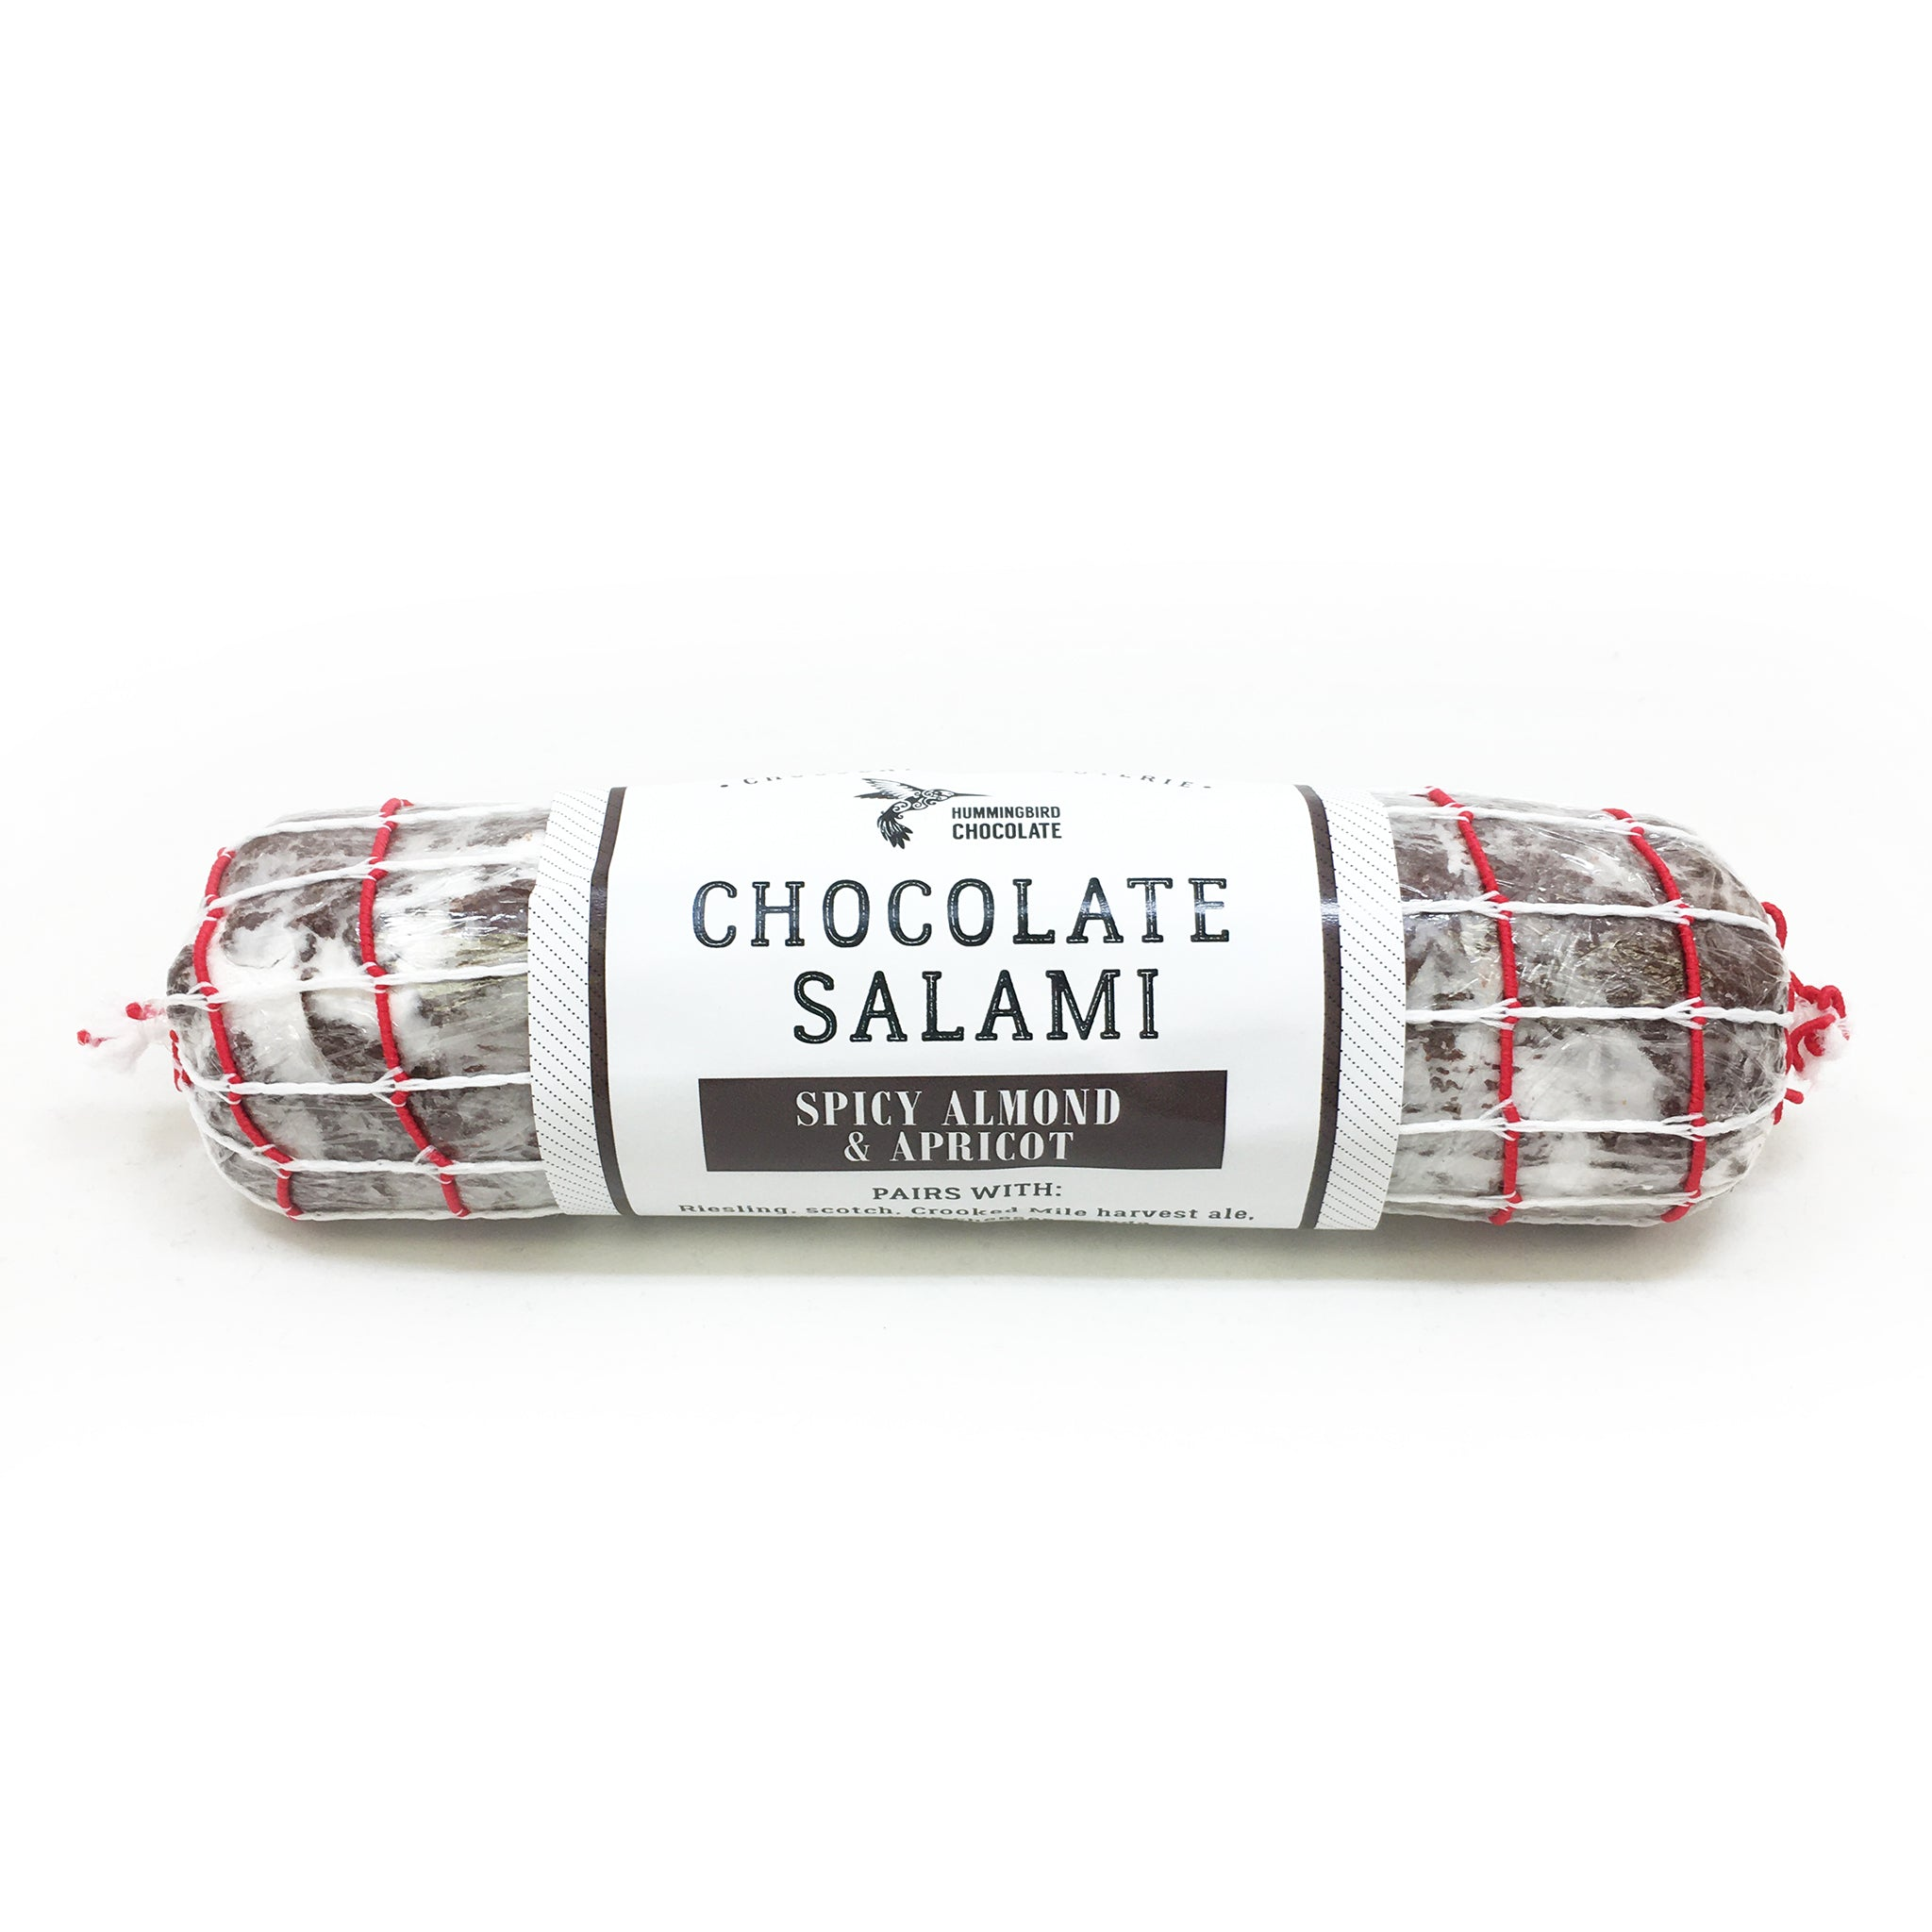 Chocolate Salami, Spicy Almond & Apricot